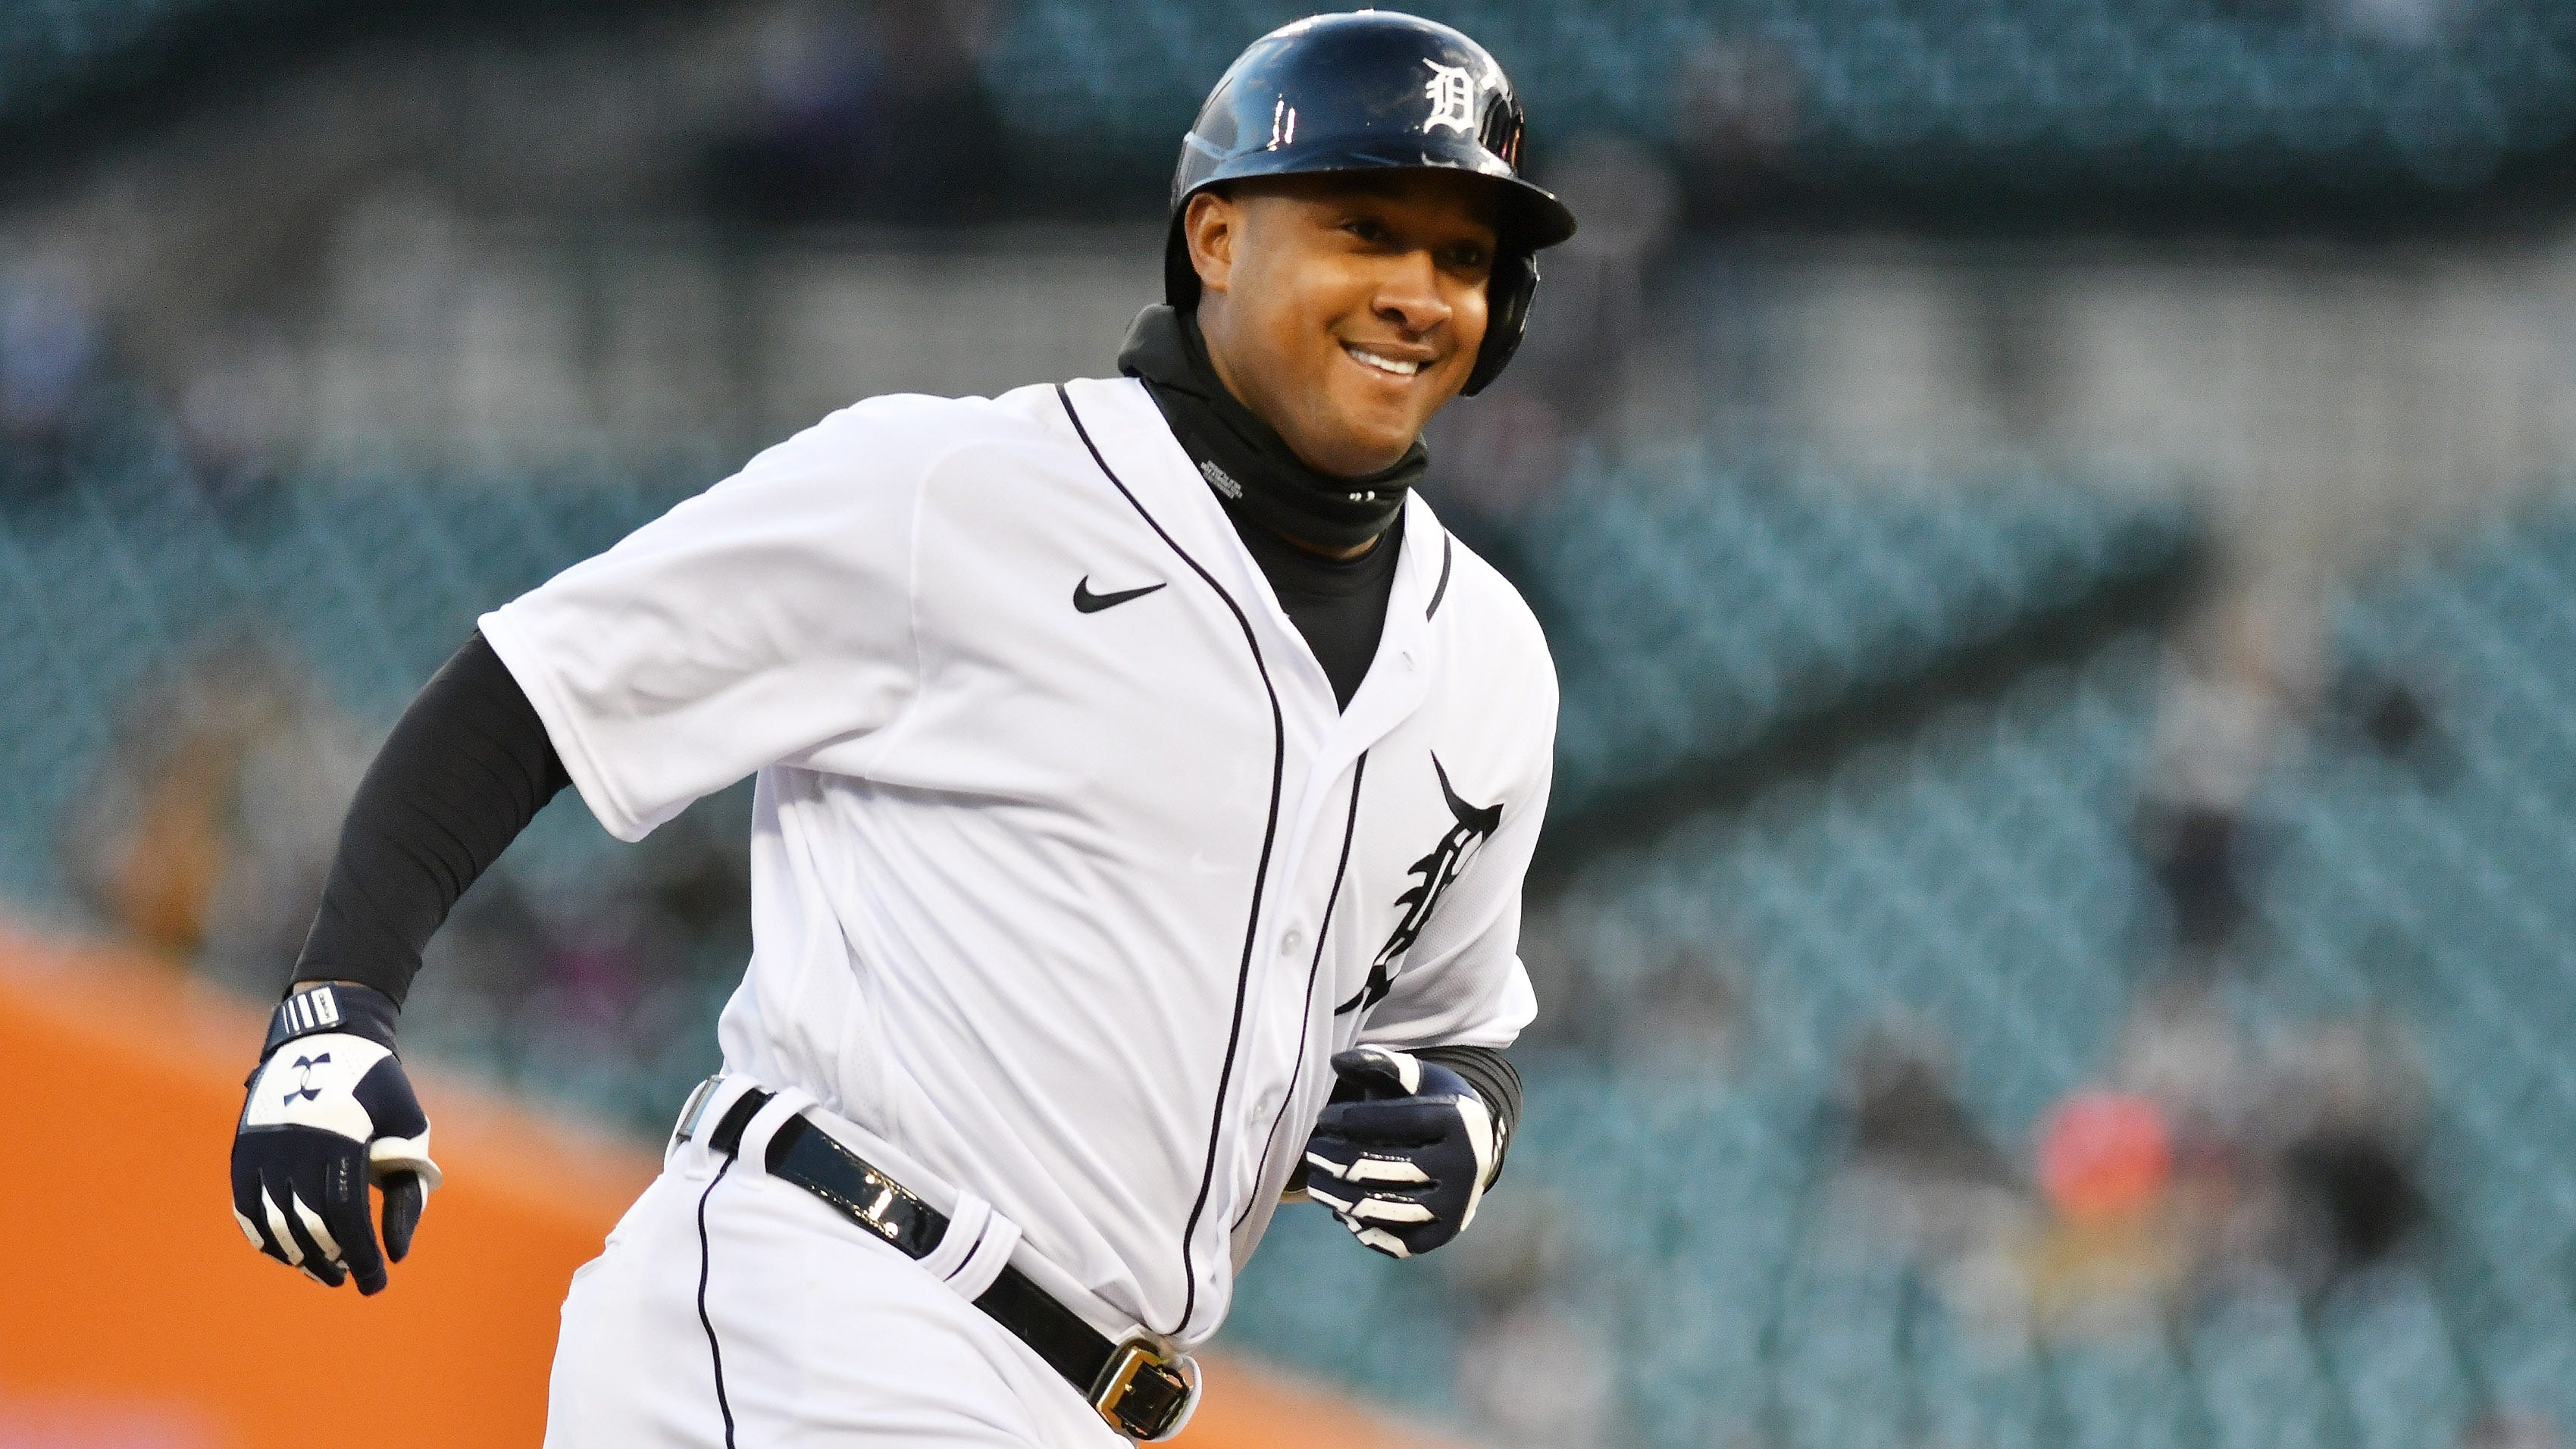 Tigers' Jonathan Schoop smiles rounding the bases on his solo home run in the fifth inning.